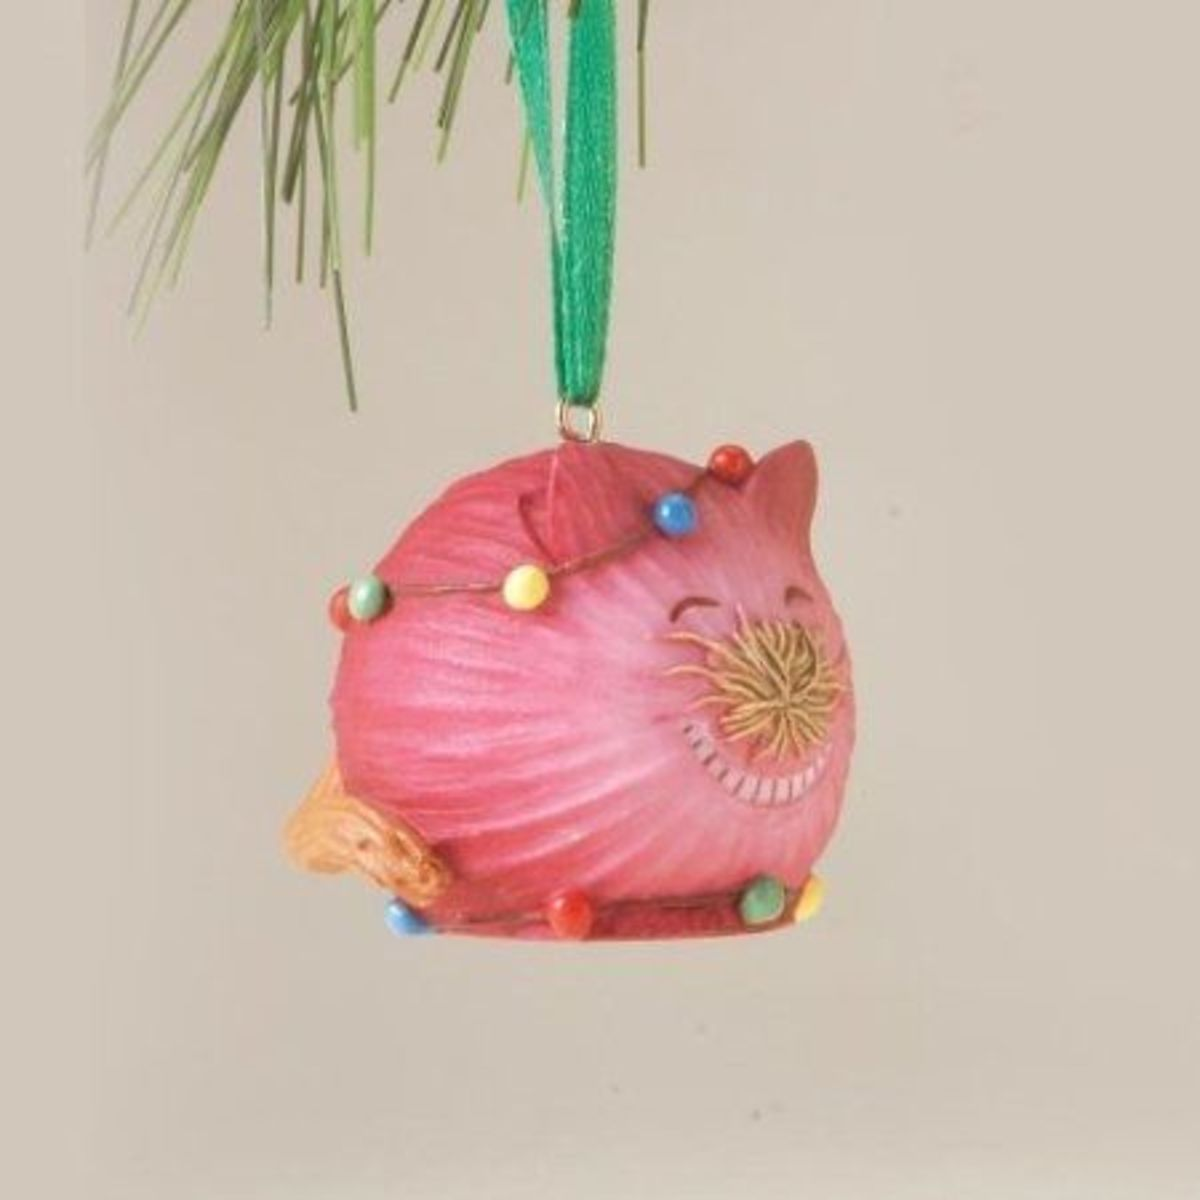 Home Grown Cat Ornaments For Christmas Are Unique And Fun!  These Little Ornaments Are Cats And Produce Designed In Their Own Unusual Way To Make An Interesting Cat Ornament For Your Christmas Tree.  Great Addition To Any Cat Collection!  Image Credi